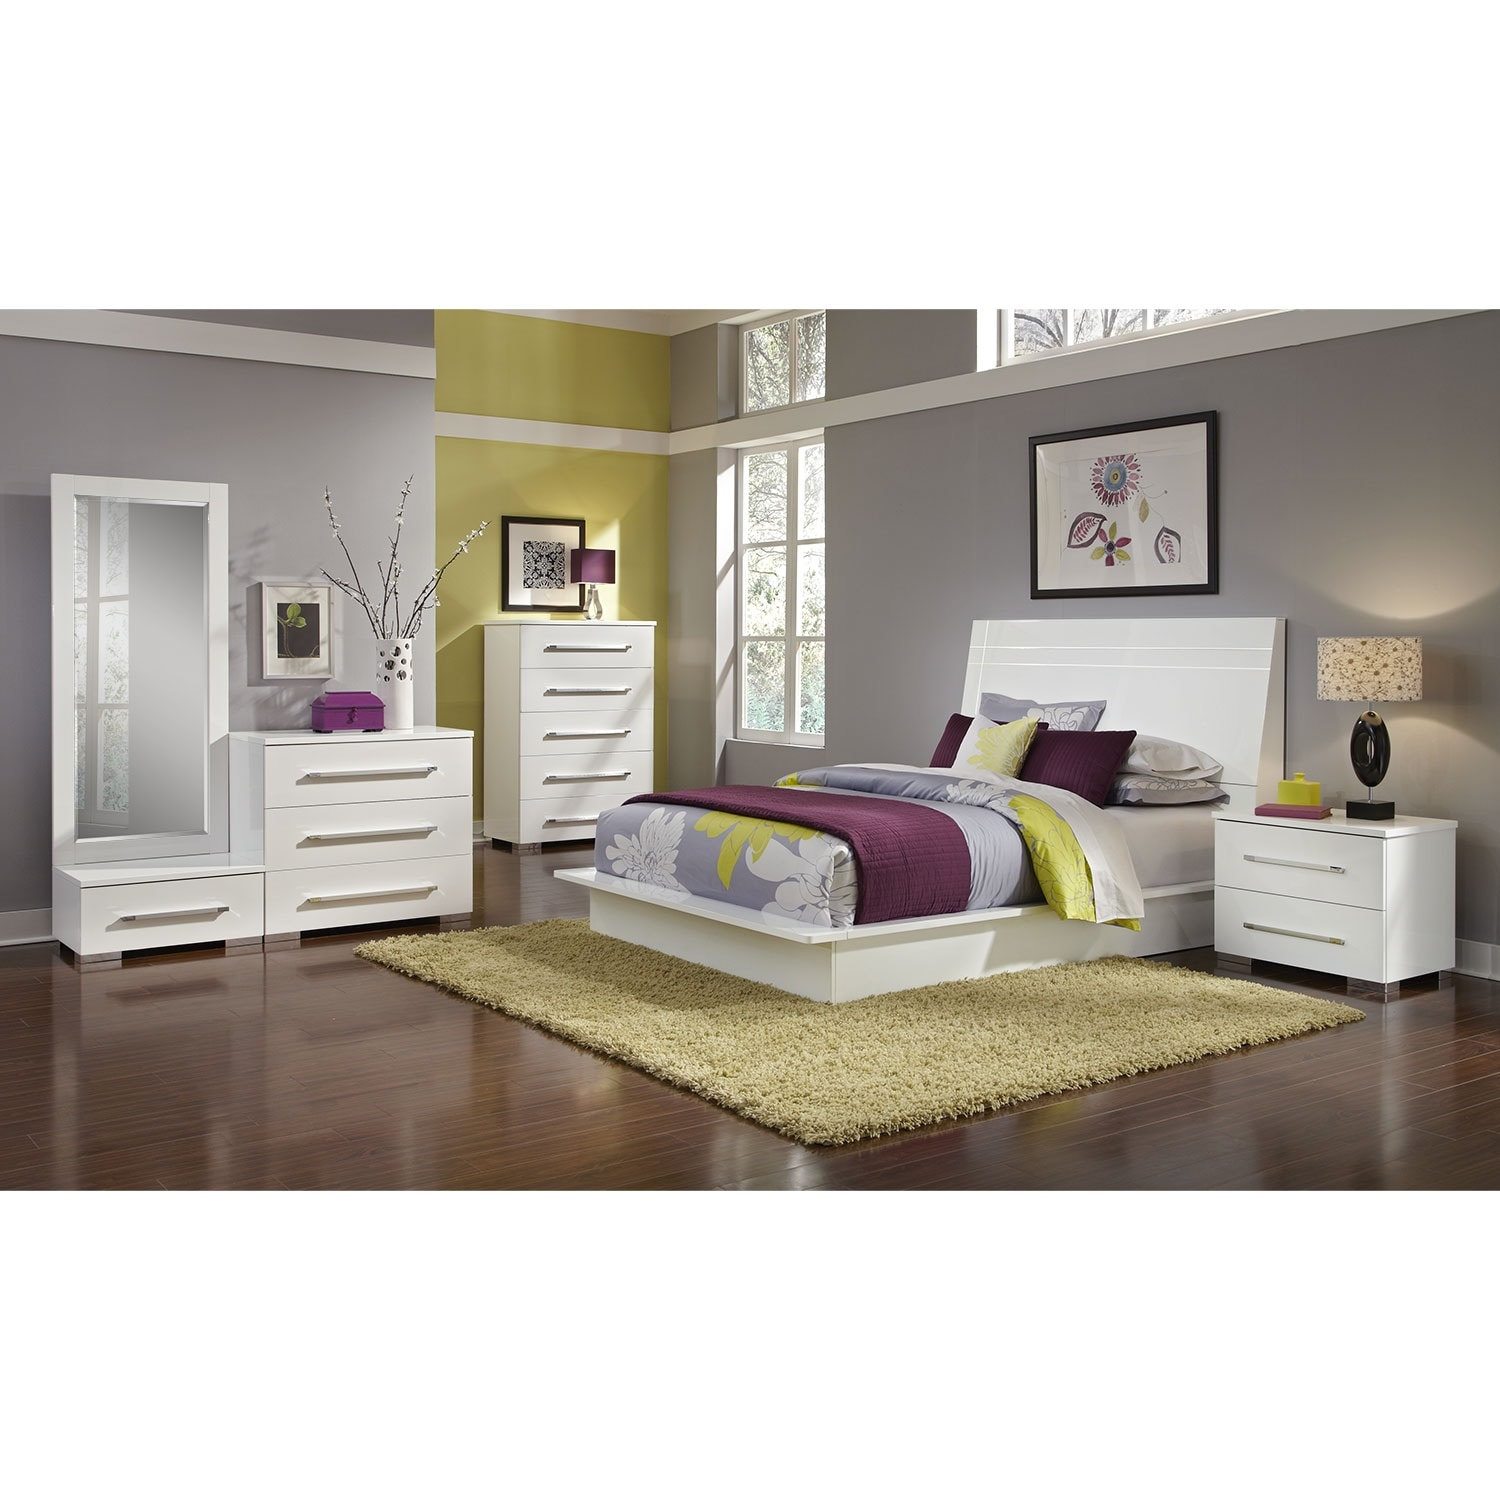 Bedroom Furniture - Dimora White II 7 Pc. King Bedroom (Alternate)